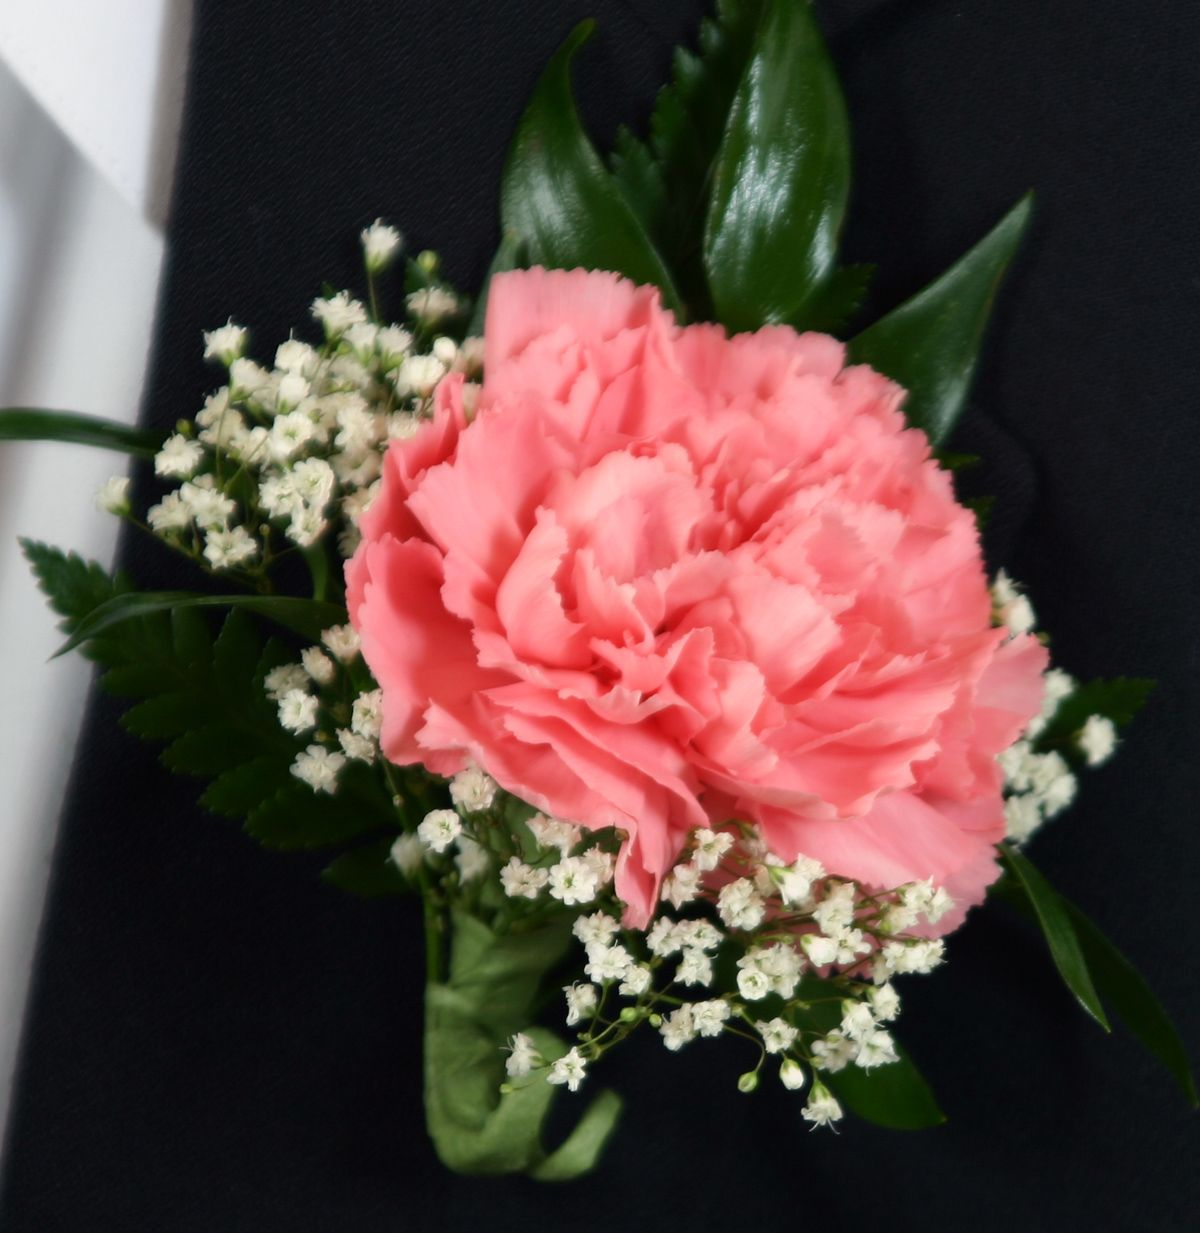 Wedding Flowers Boutonniere: Carnation Boutonnieres - Google Search